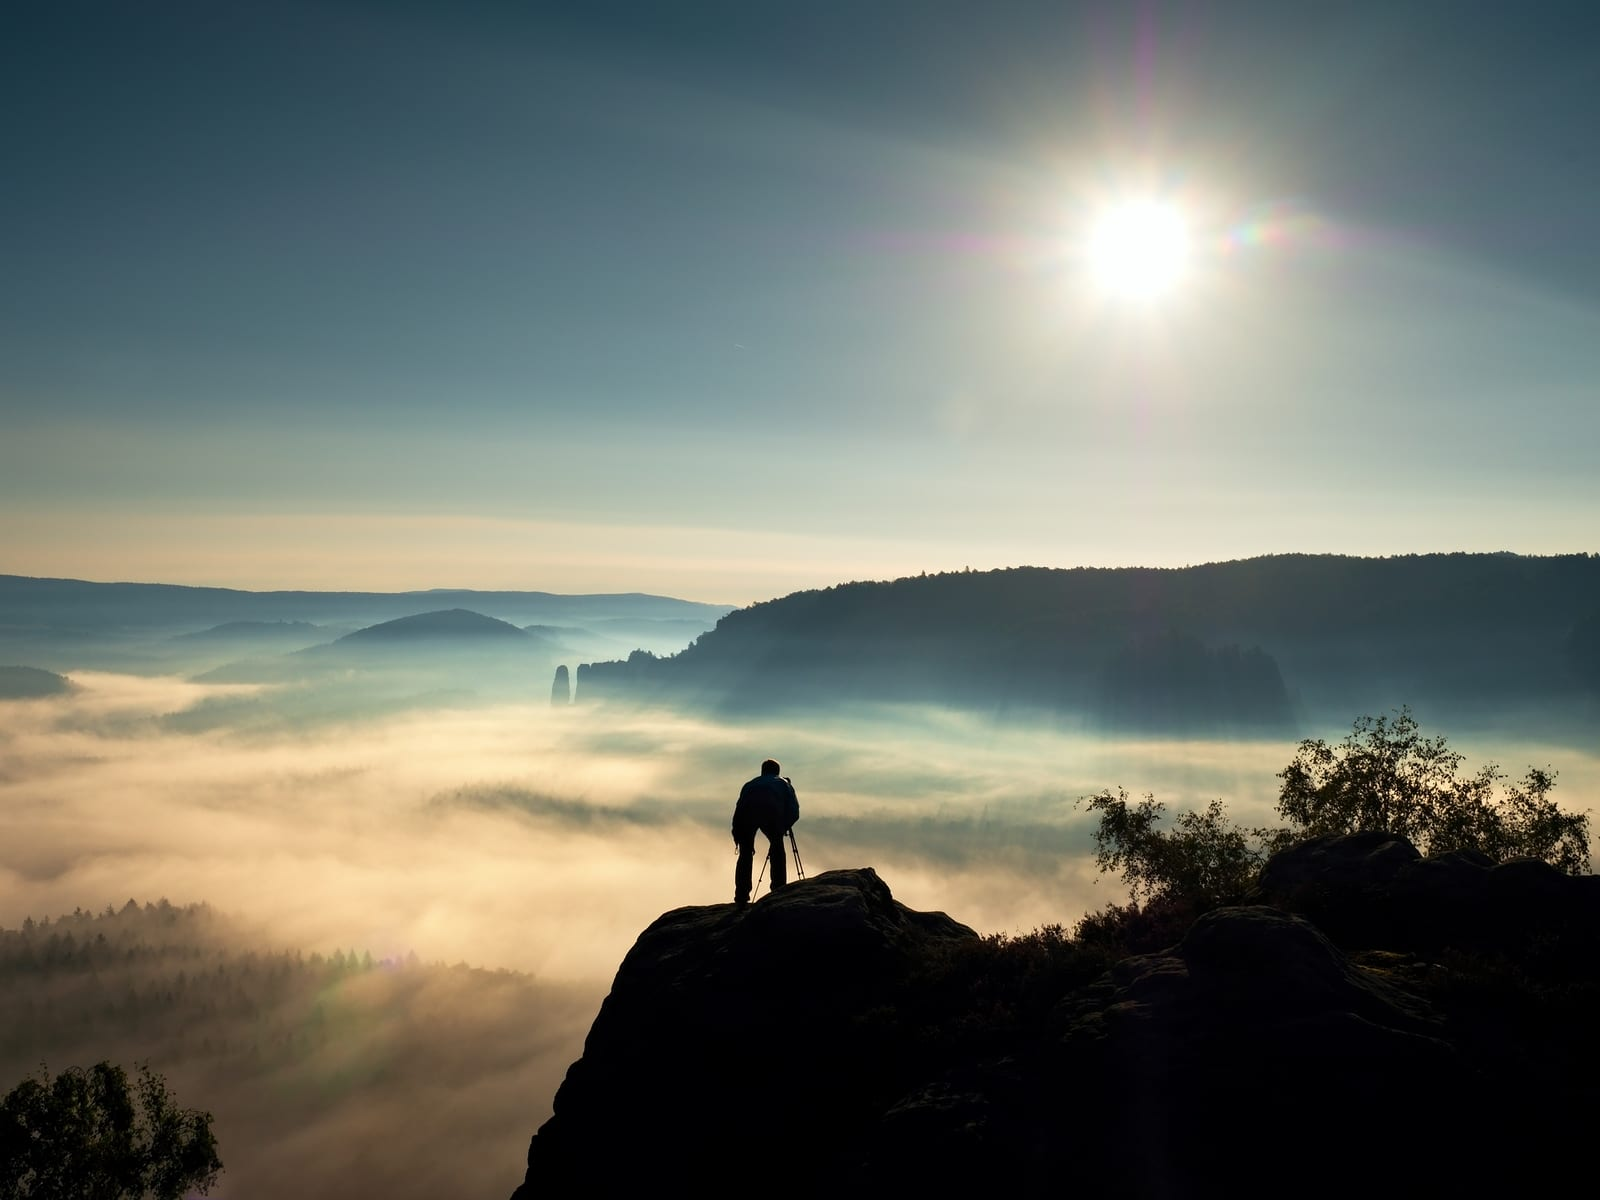 Nature photographer with tripod and camera on cliff and thinking. Dreamy fogy landscape orange misty sunrise in a beautiful mountains. Vivid and strong vignetting effect.